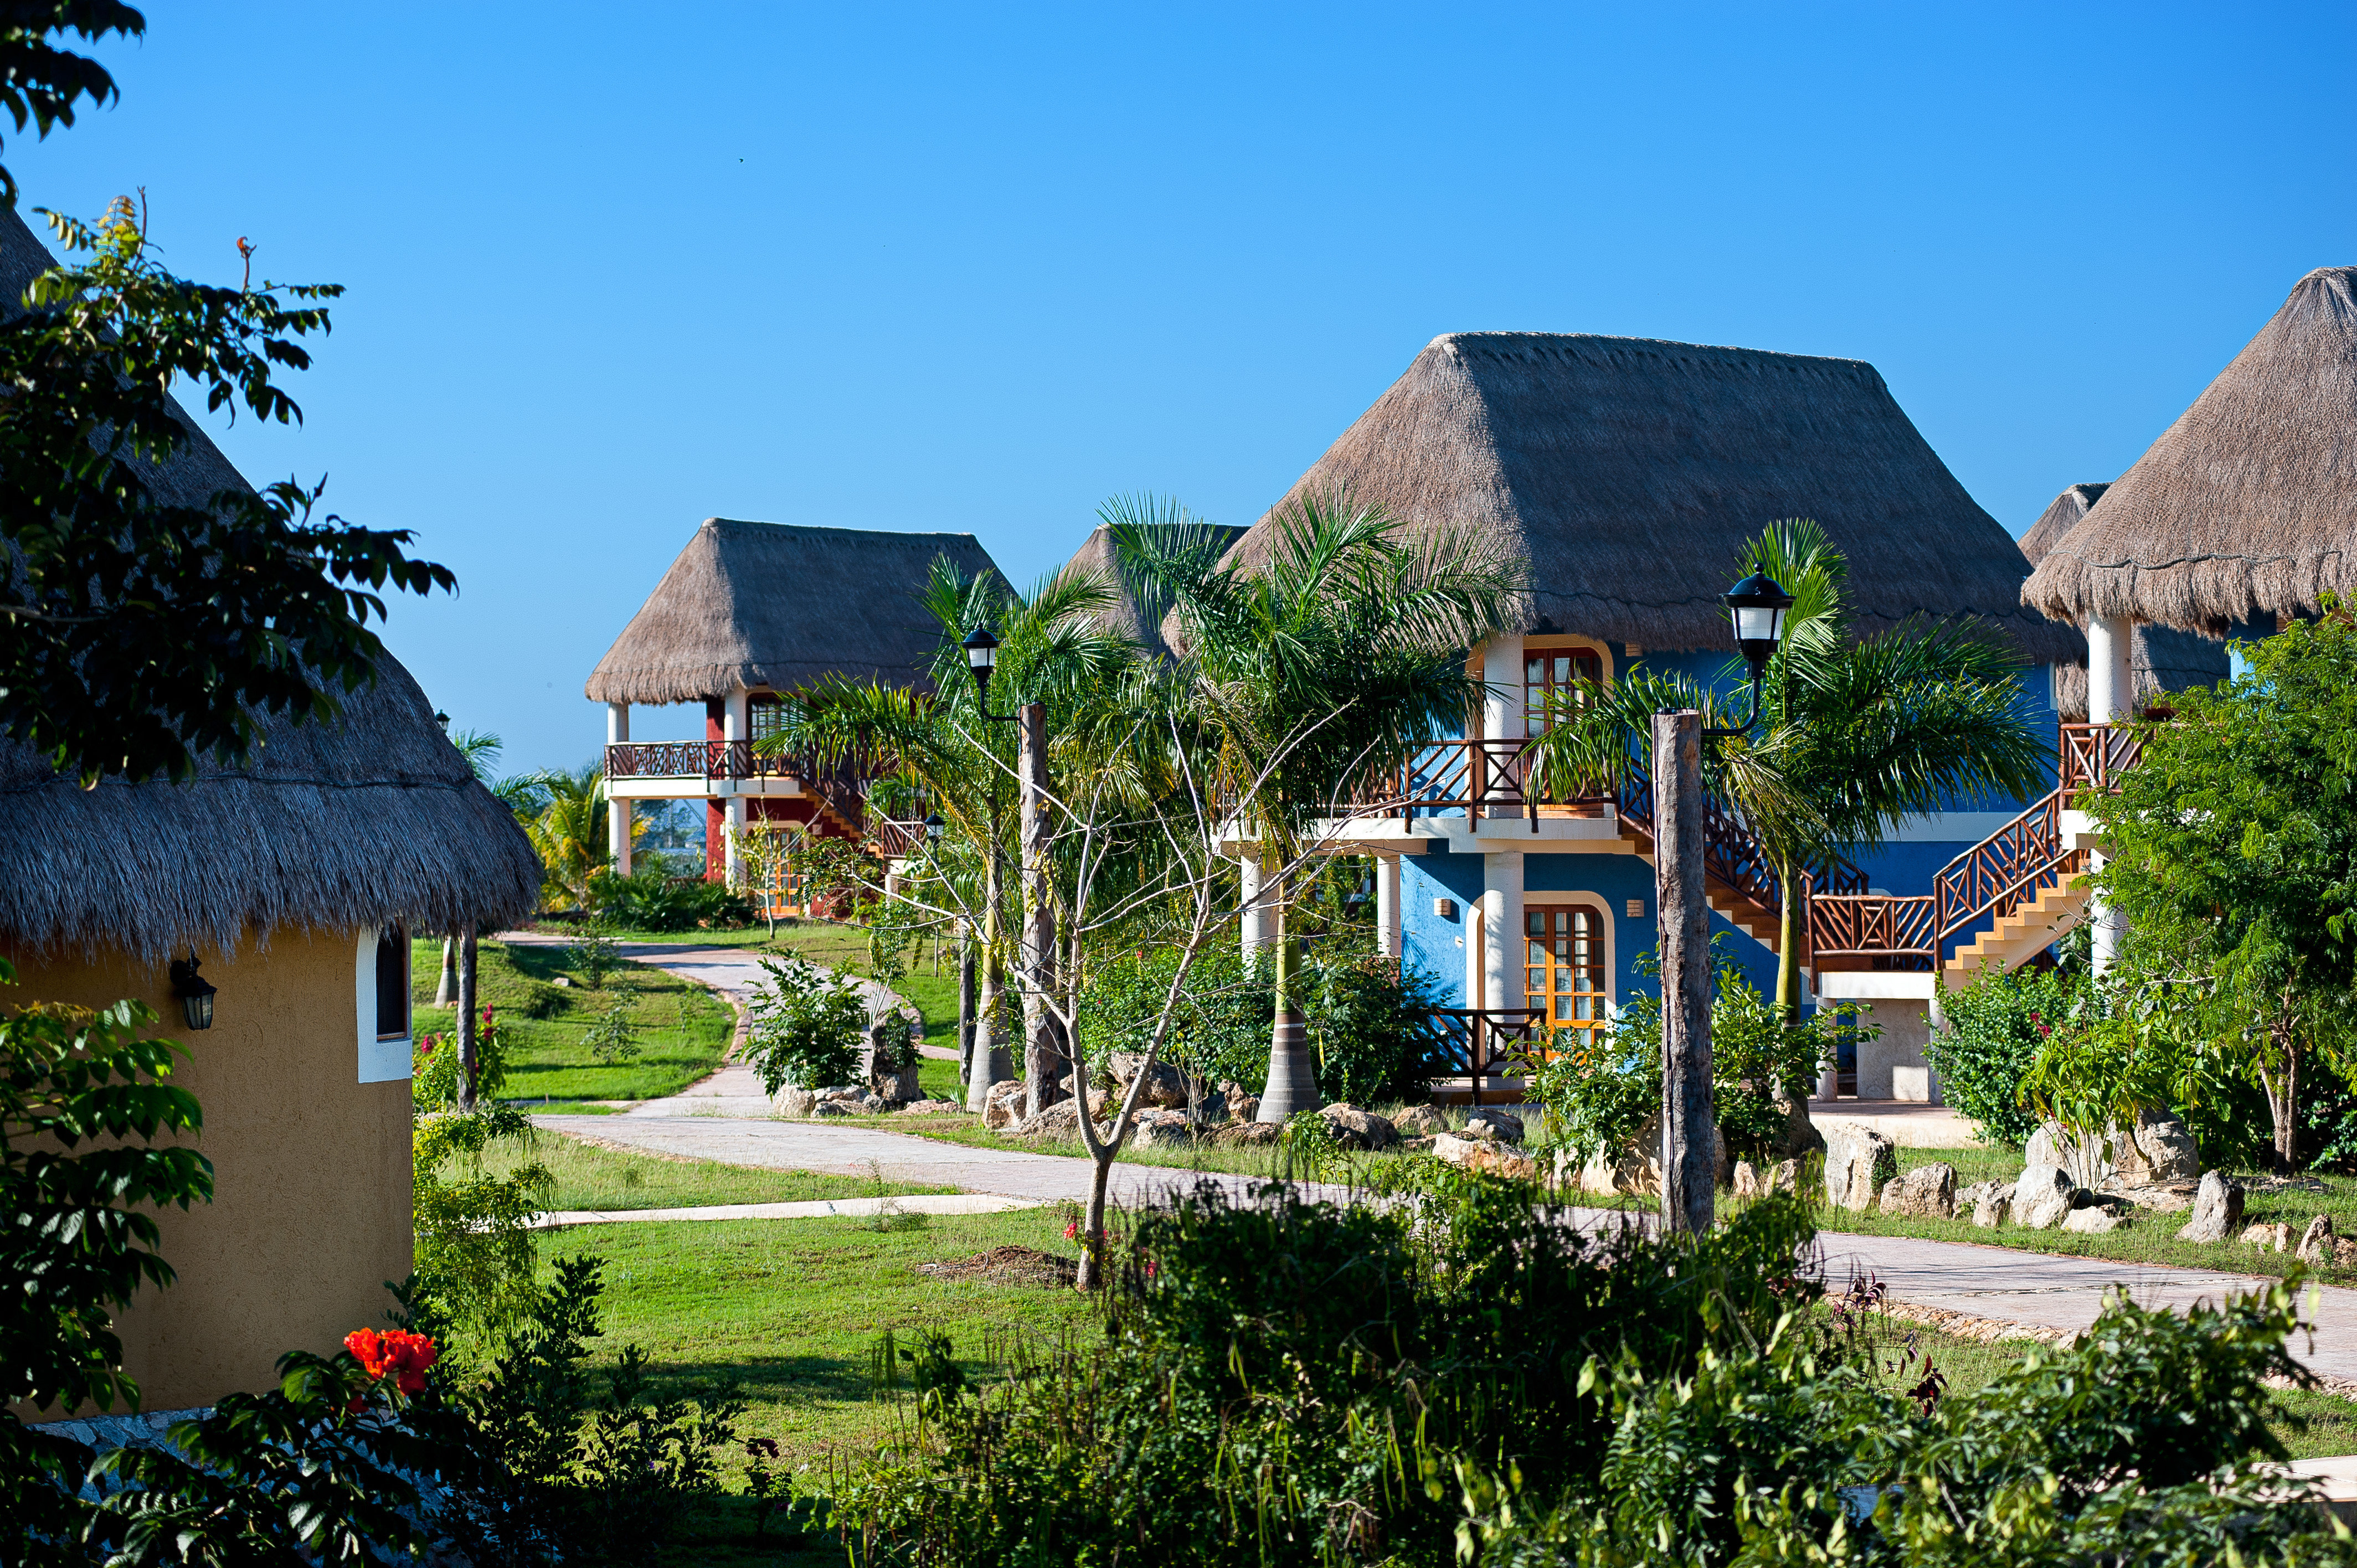 Buildings Exterior Tropical tree house grass property Resort home neighbourhood residential area Village cottage Garden mansion Villa residential Town bushes surrounded